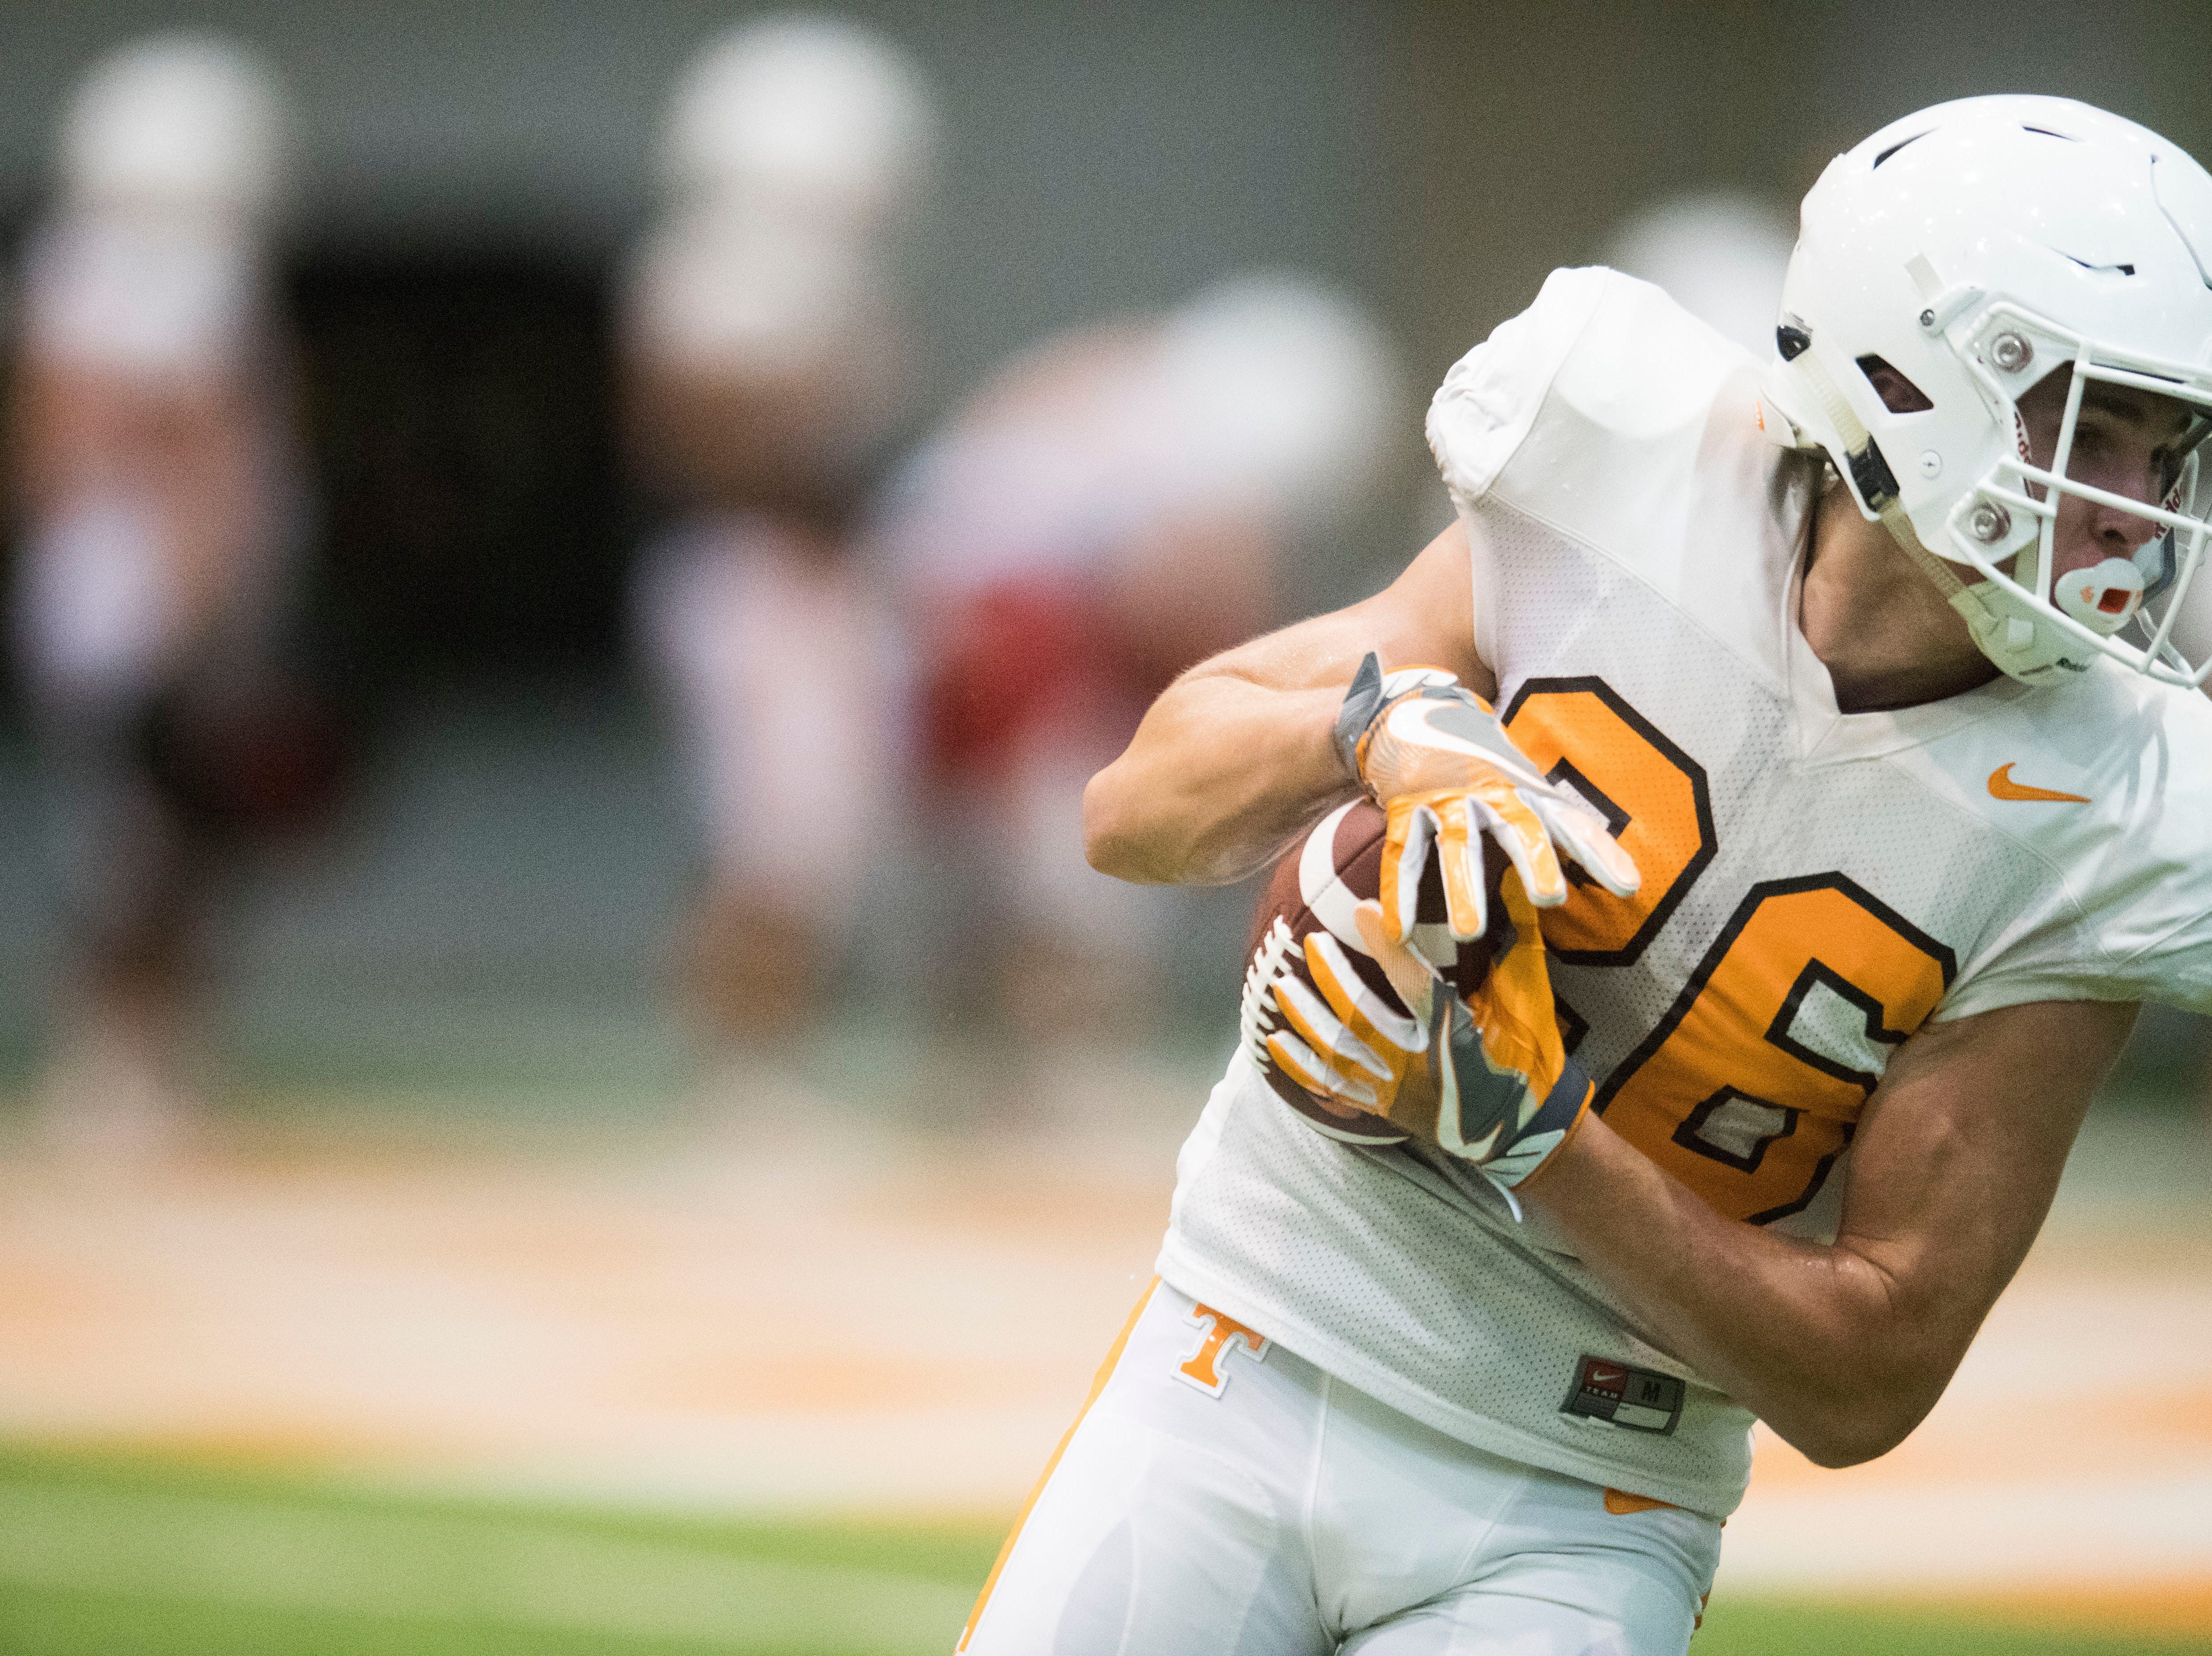 Tennessee wide receiver Jay Shoop (26) runs with the ball during UT Vols preseason football practice Wednesday, Aug. 8, 2018.